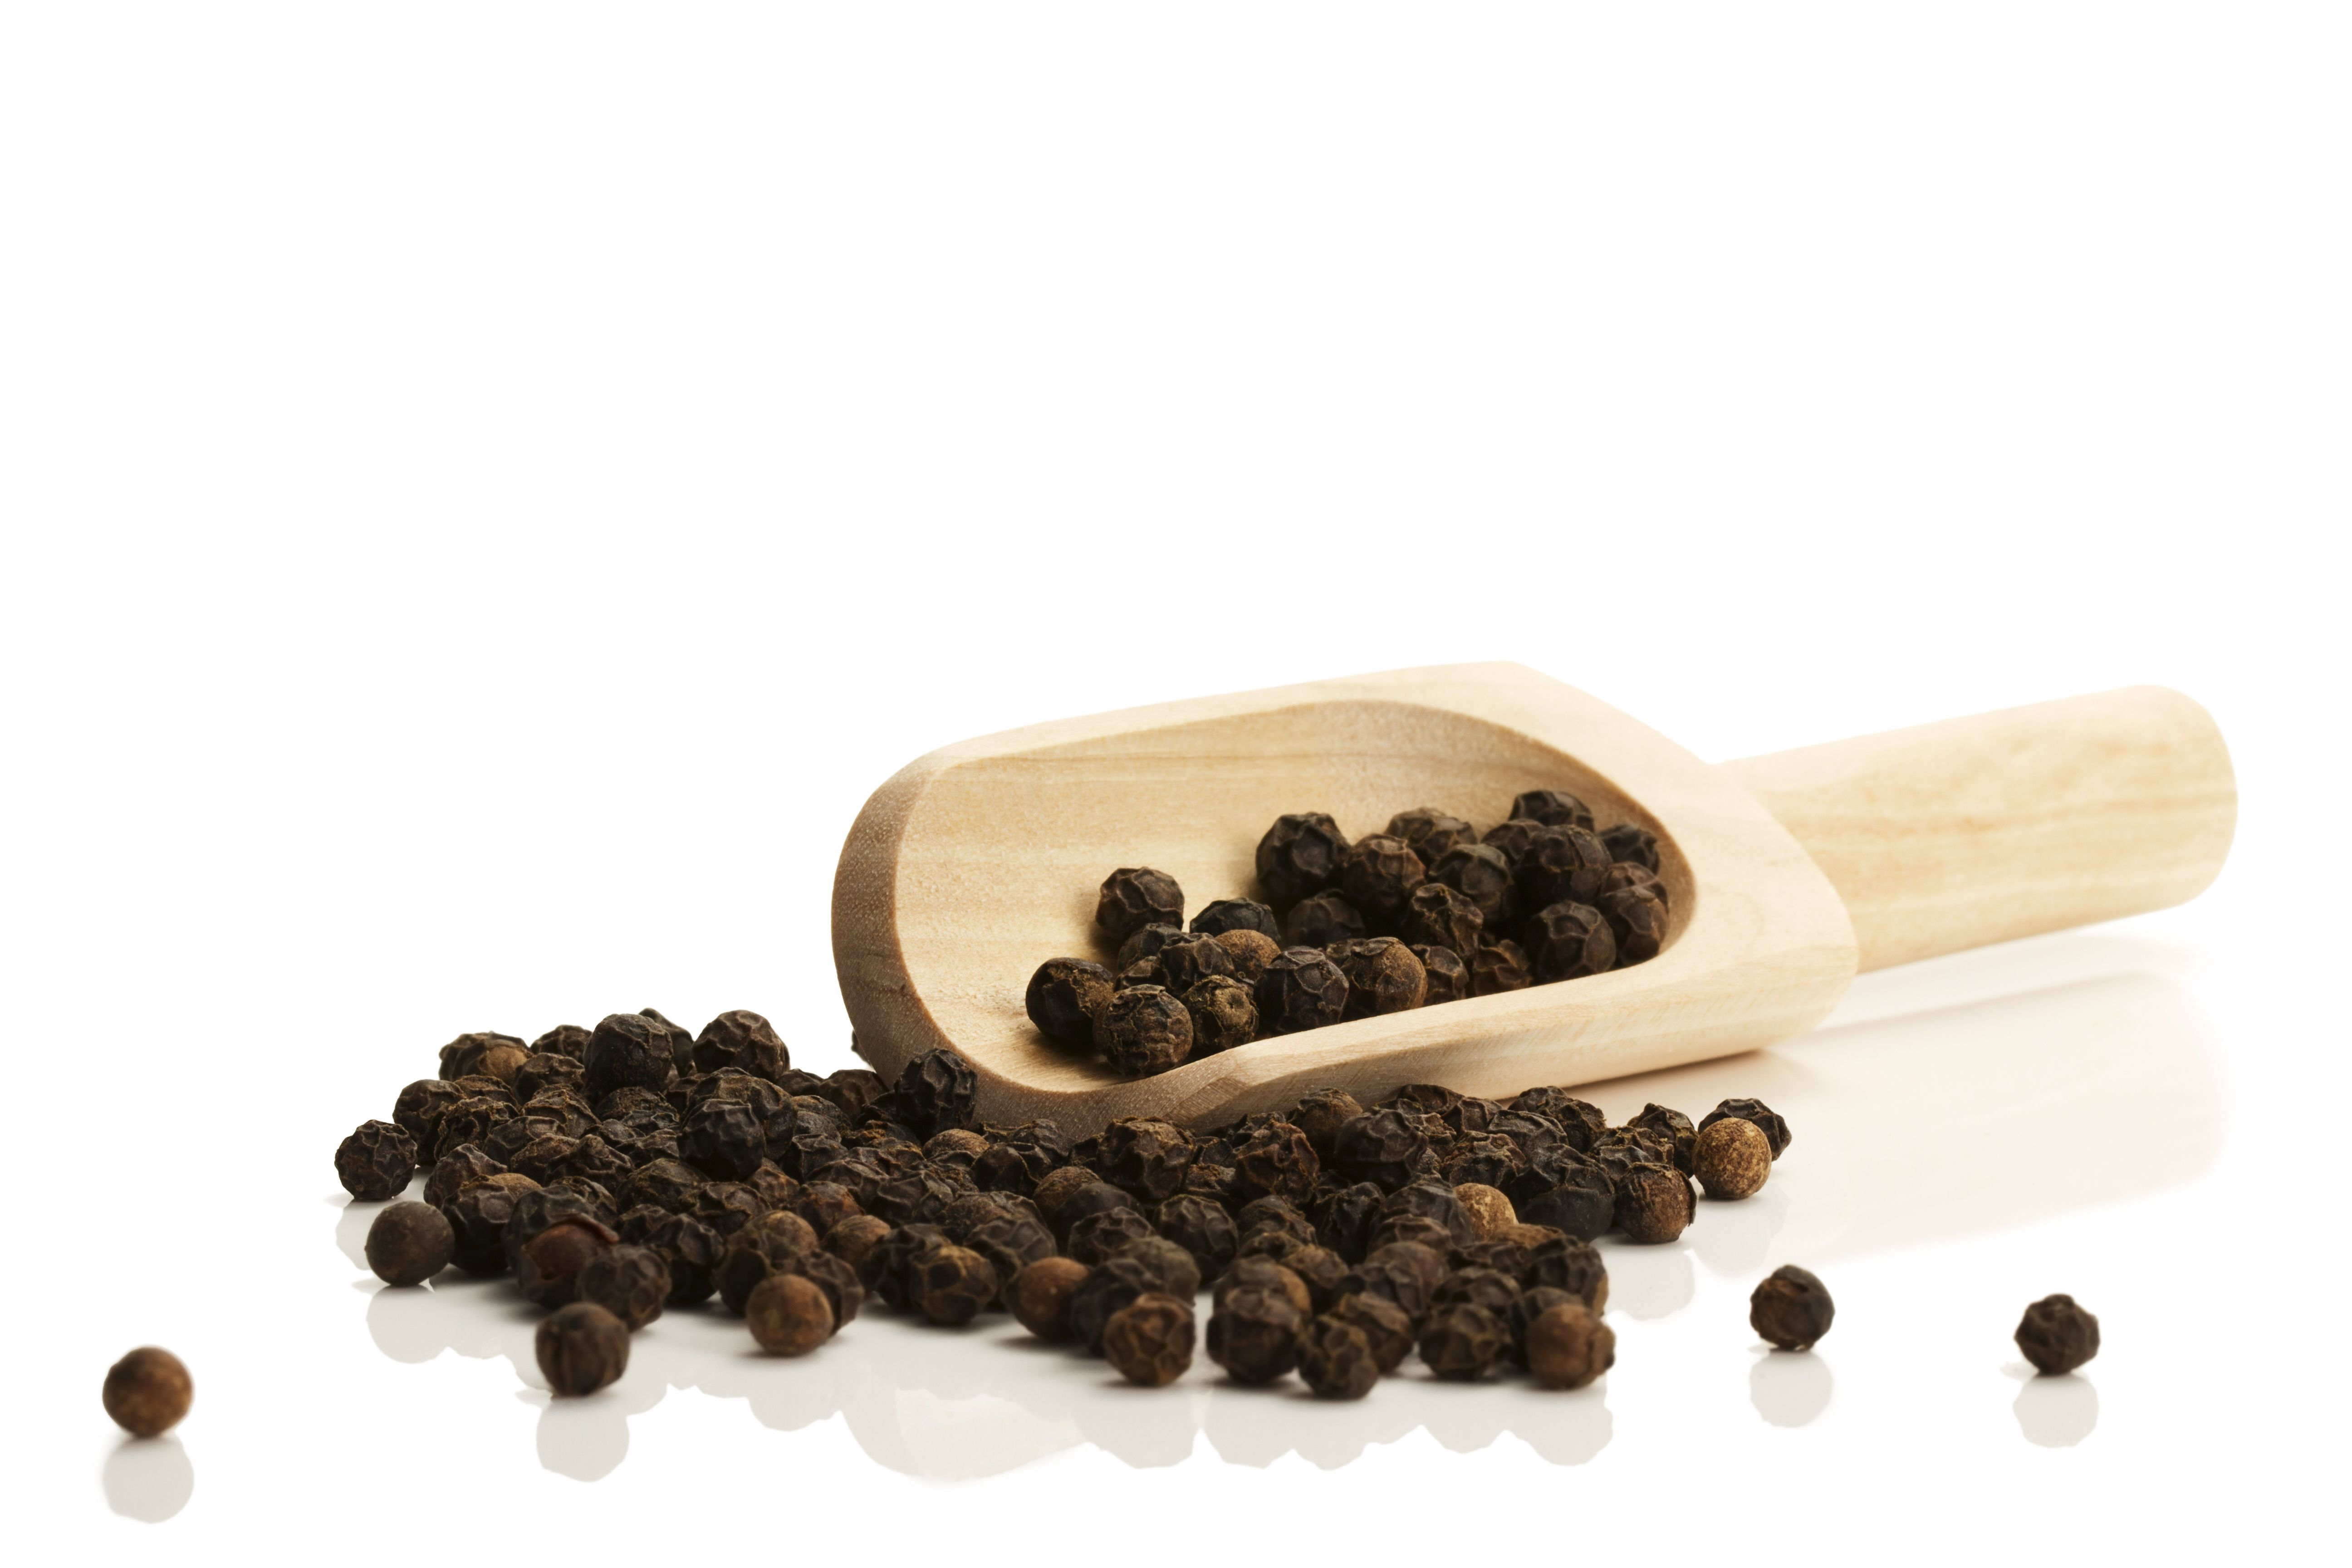 black peppercorns with a small wooden shovel from side on white background